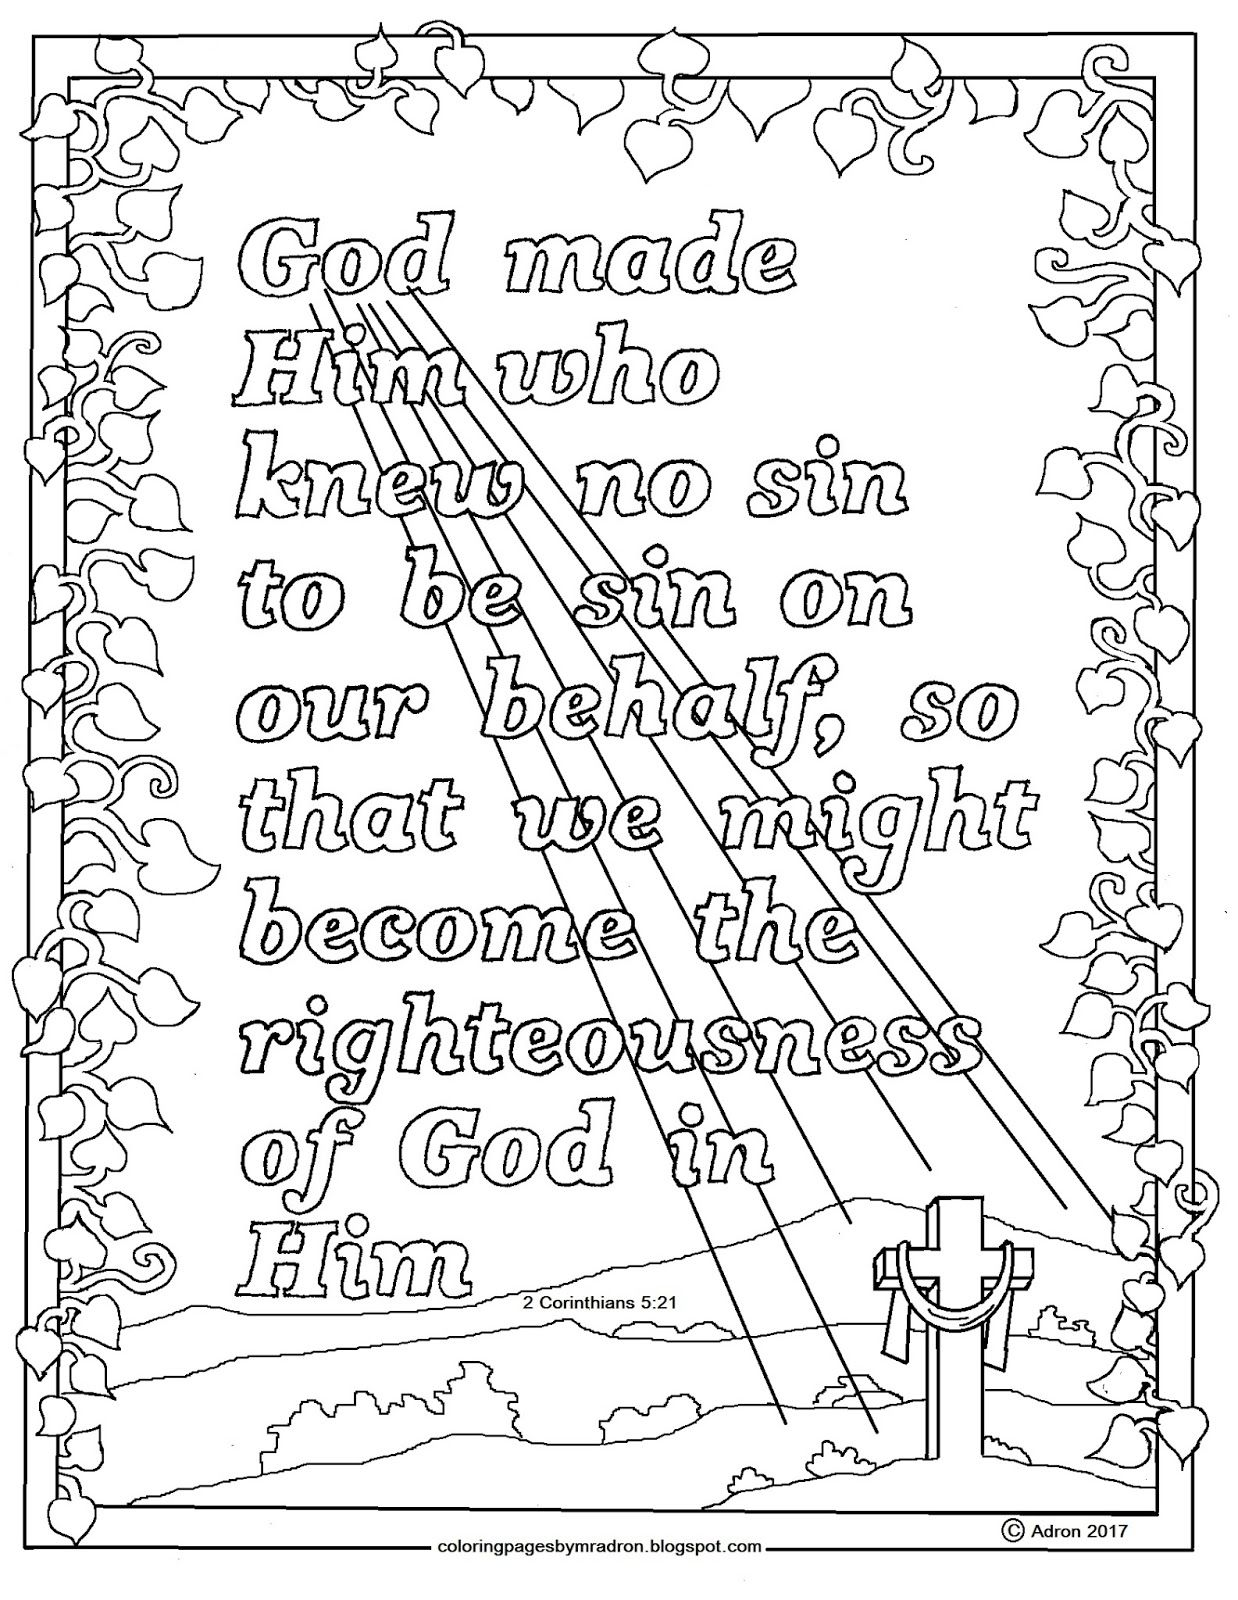 printable 1 corinthians 12 coloring pages coloring pages for kids by mr adron 1 corinthians 29 coloring 12 printable corinthians 1 pages